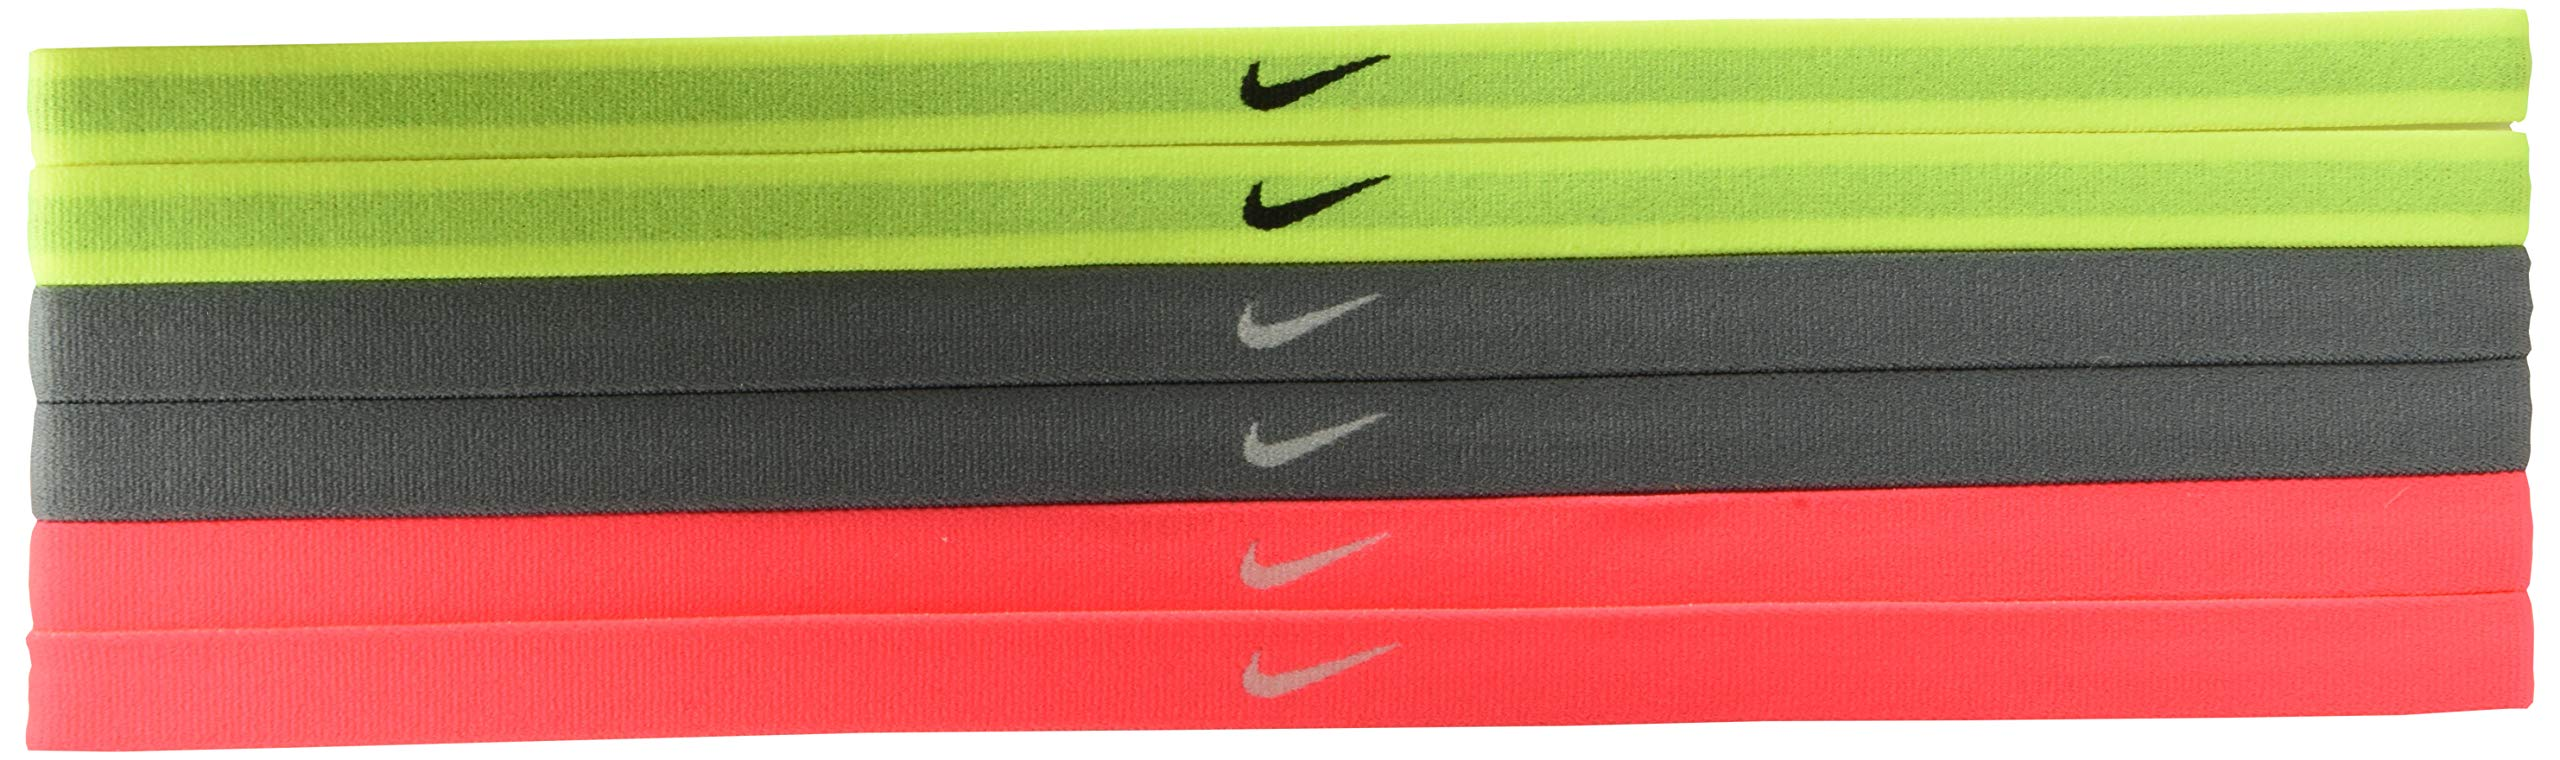 Nike Women's Swoosh Sport Headbands 6PK Volt/Cool Grey/Hot Punch Size One Size by Nike (Image #1)